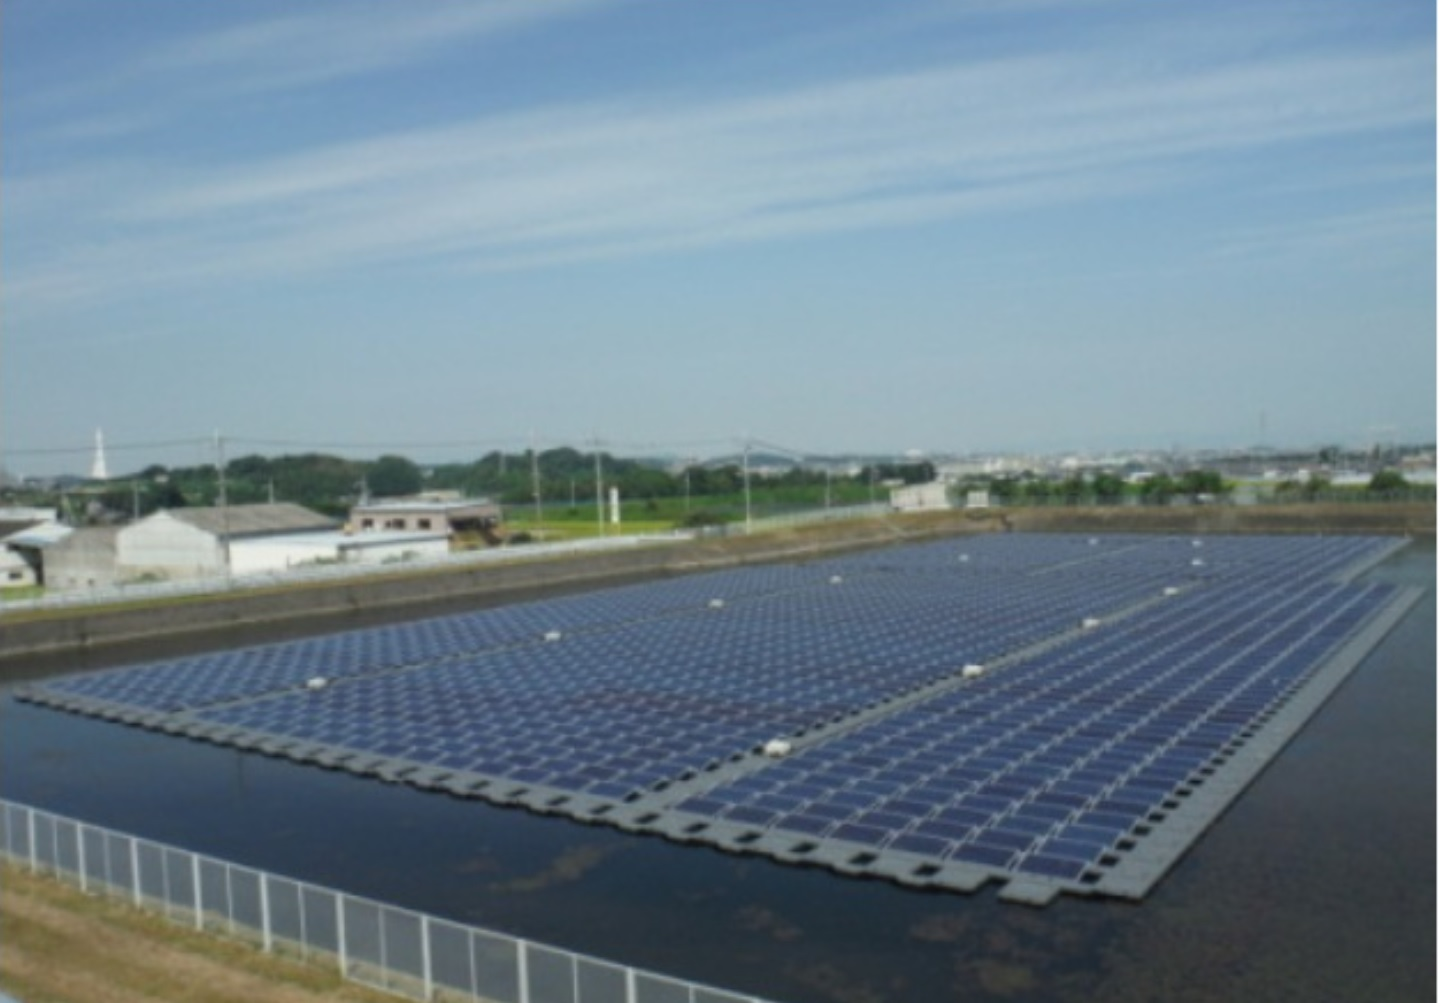 japan's largest floating solar plant being built - the green optimistic